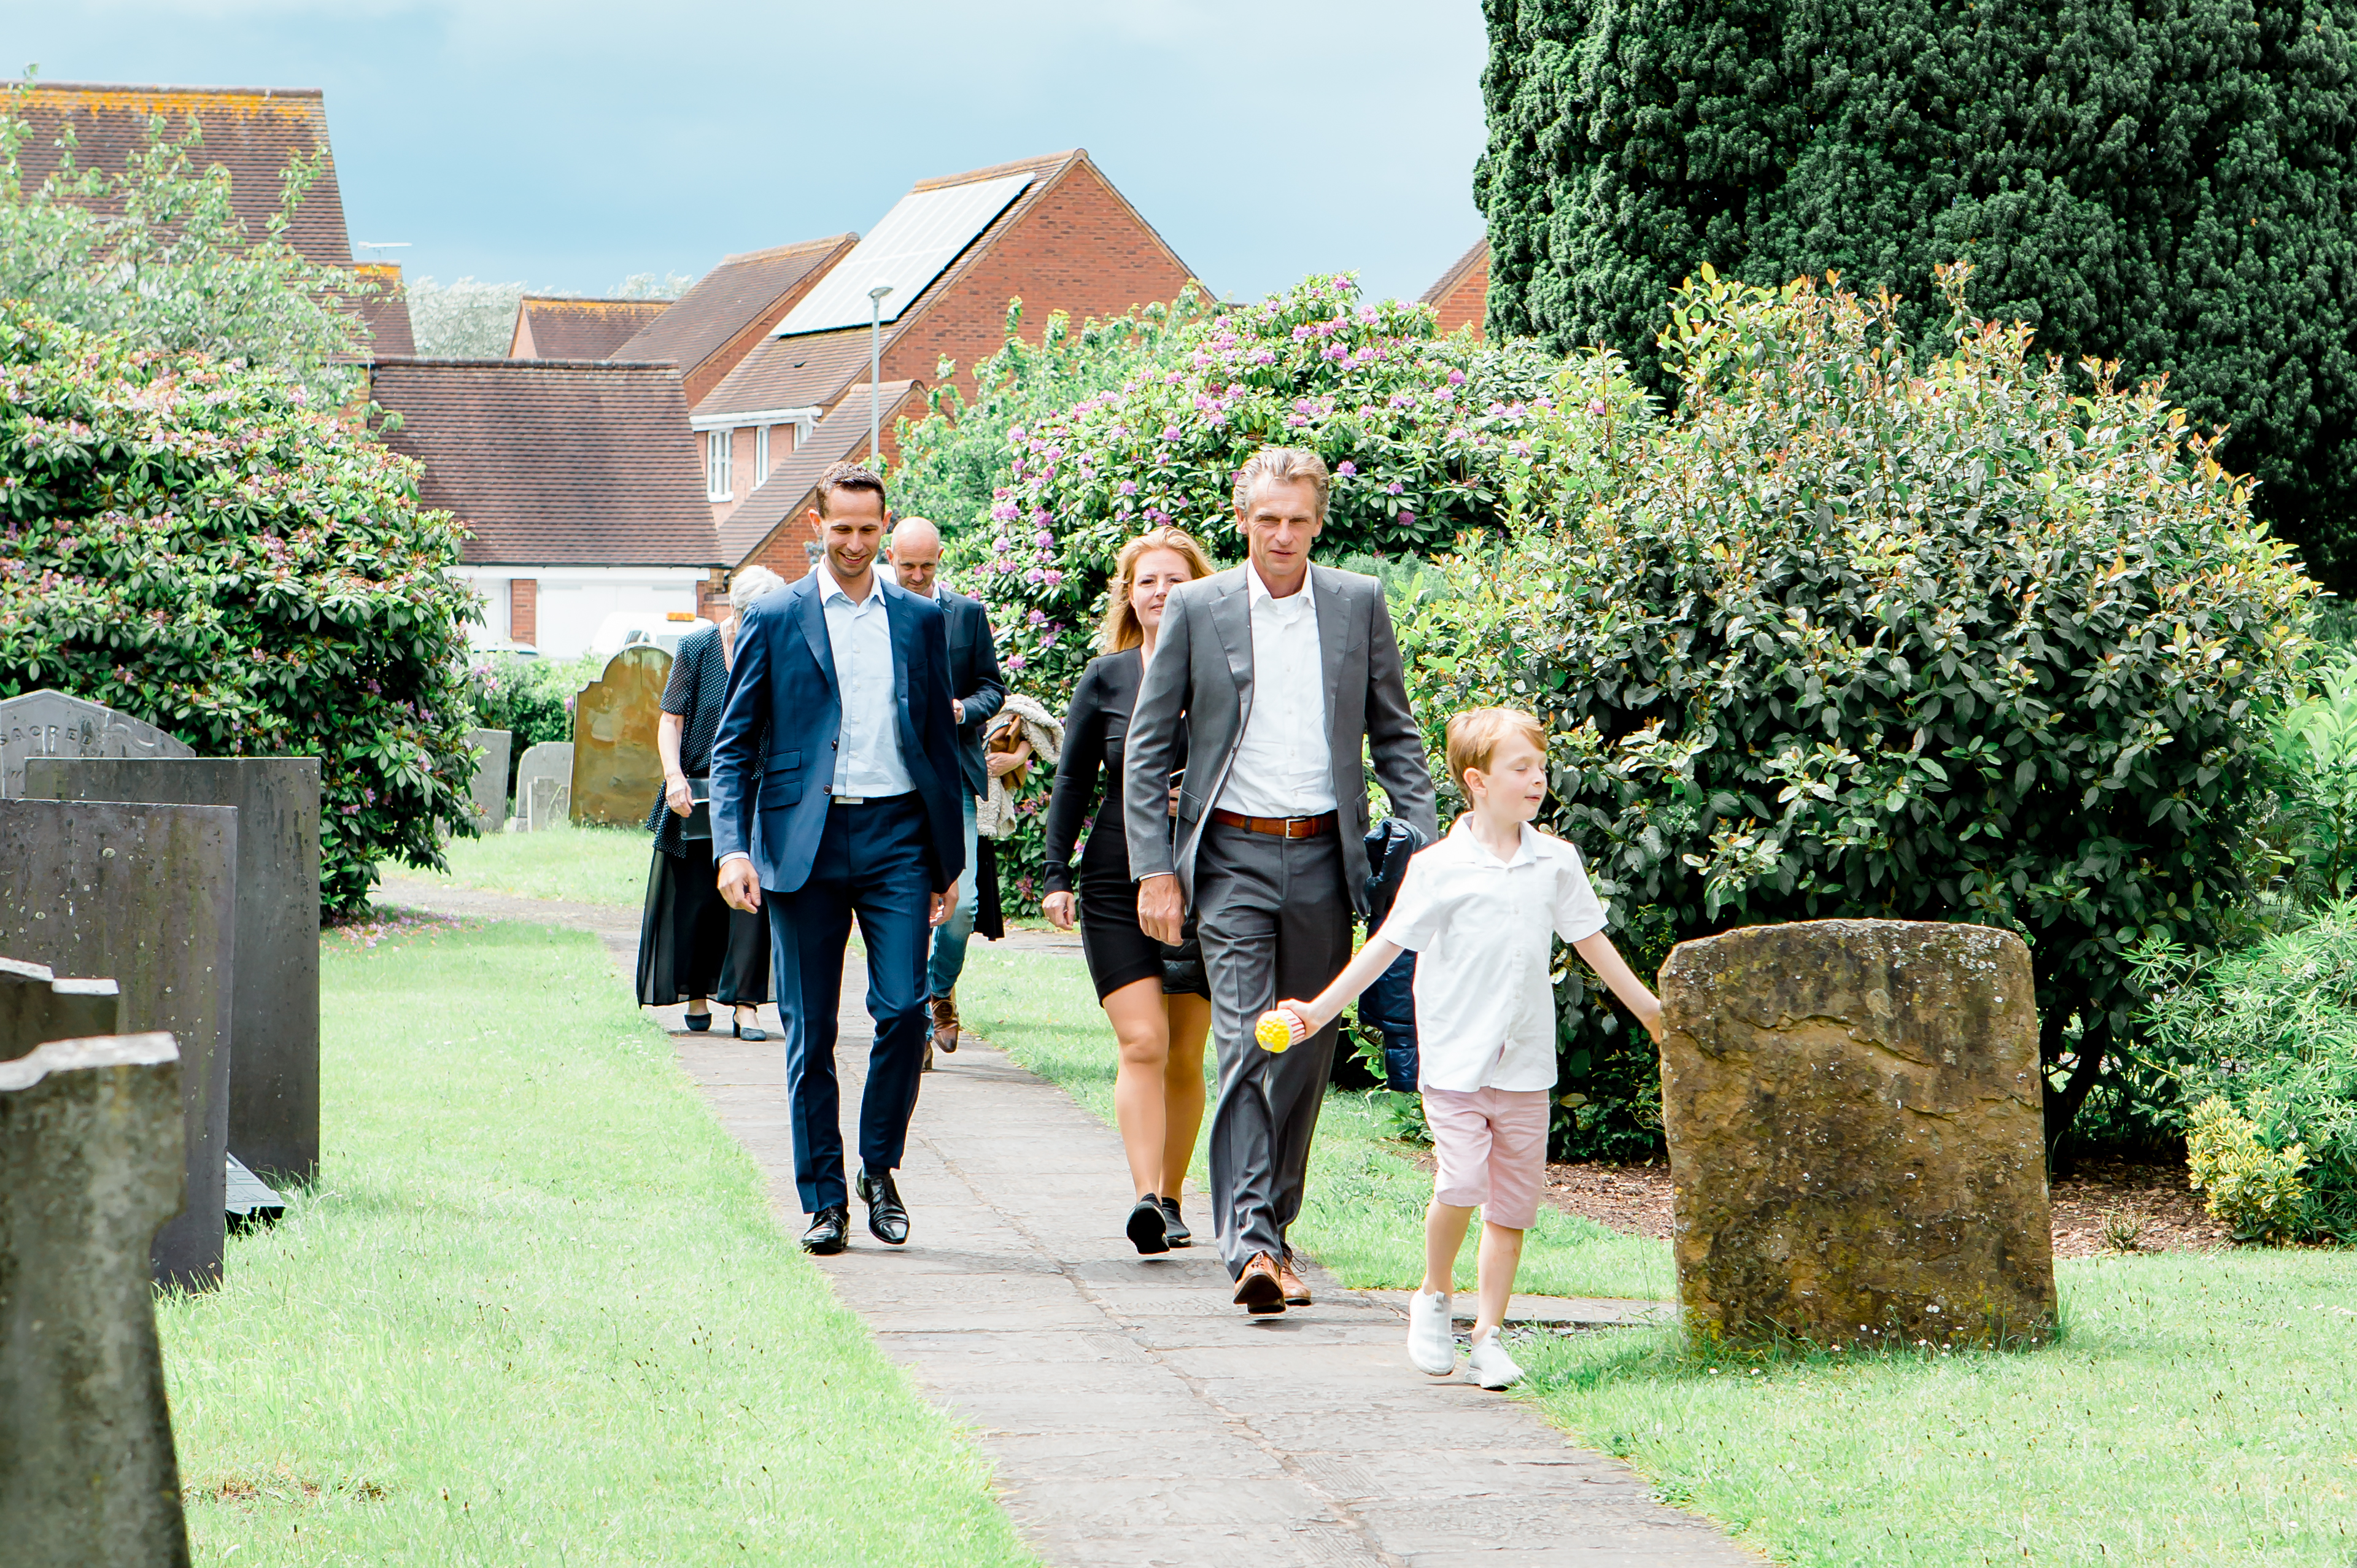 Wedding Photography in Rugby - Guests